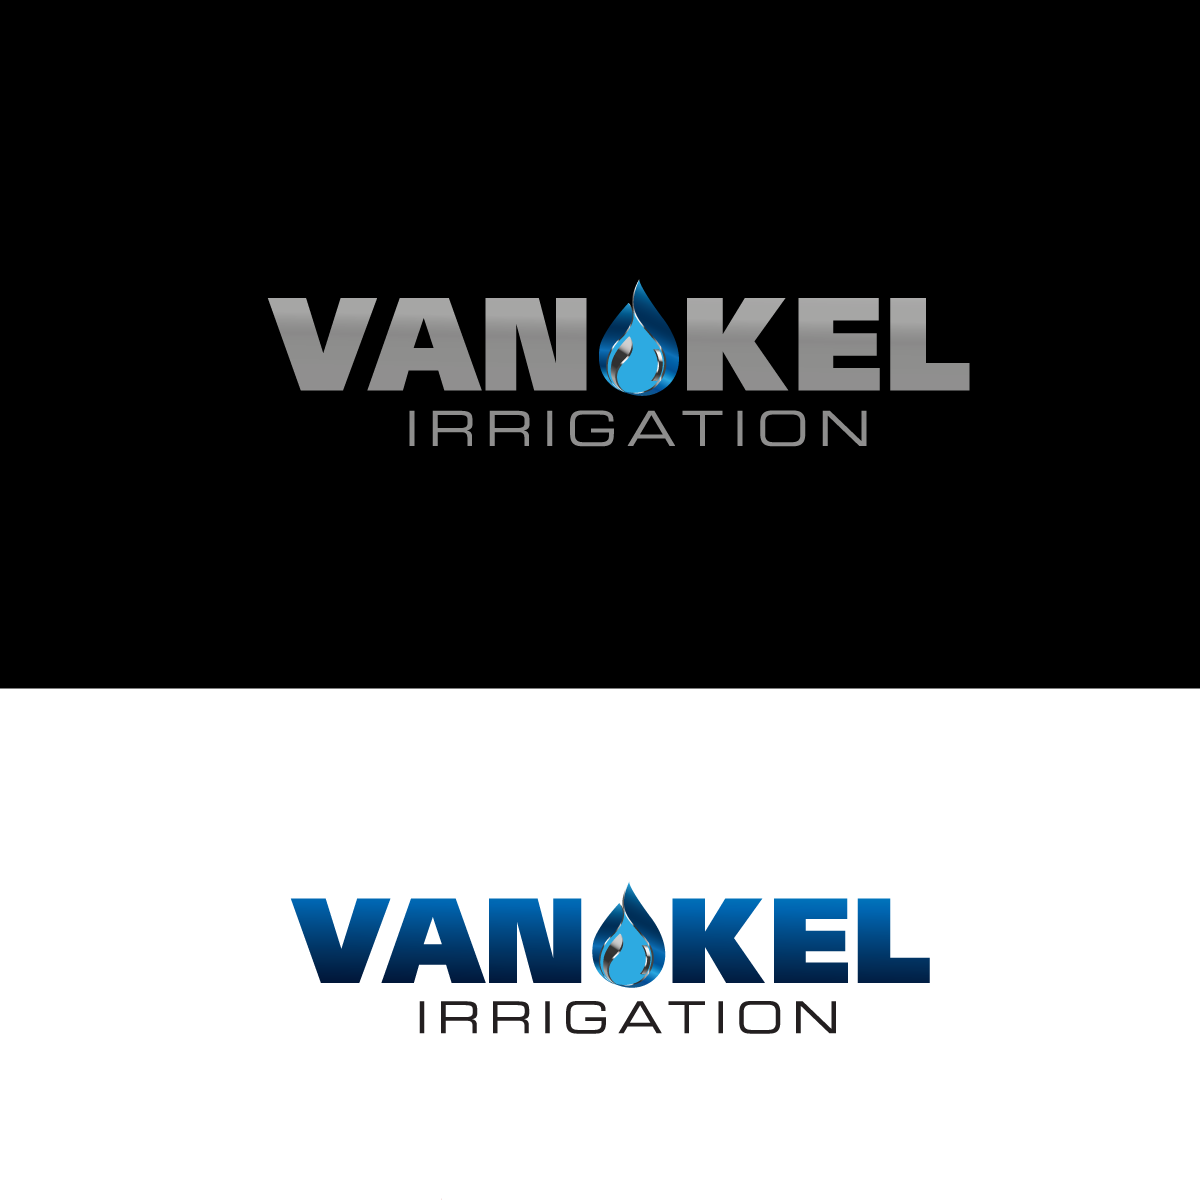 Logo Design by rockin - Entry No. 179 in the Logo Design Contest Van-Kel Irrigation Logo Design.